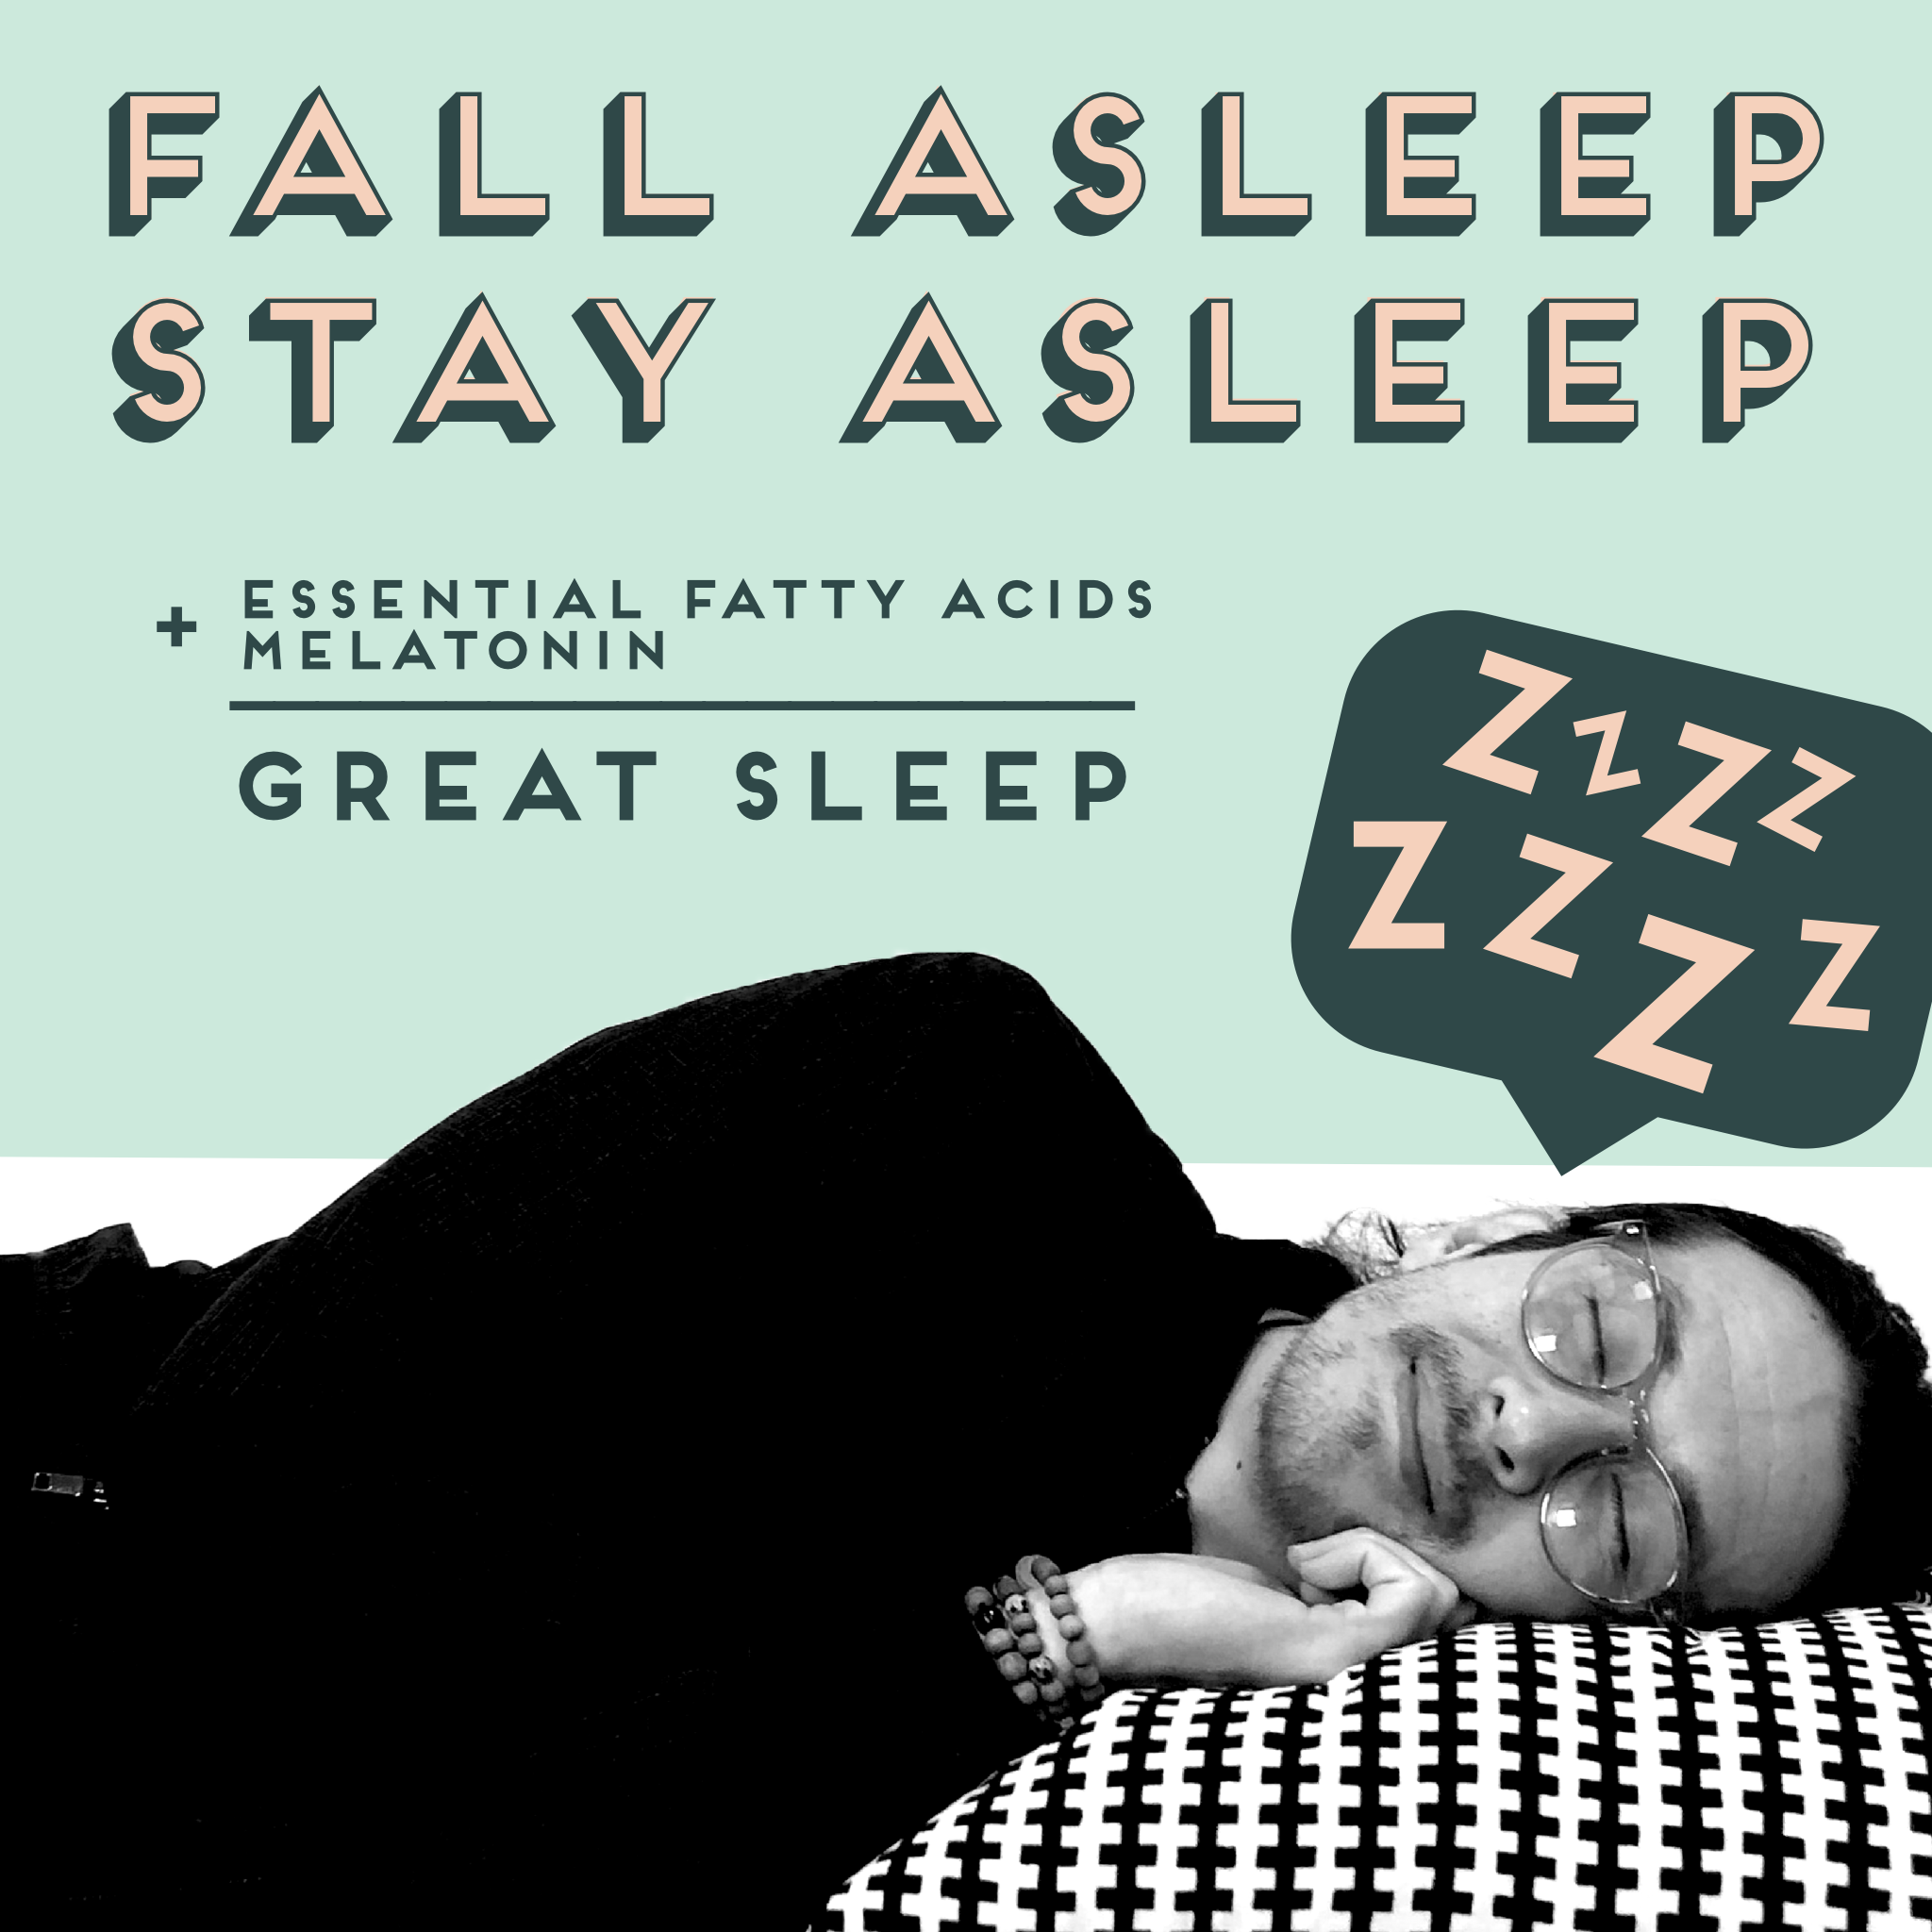 Dr. Motley - Fall Asleep, Stay Asleep